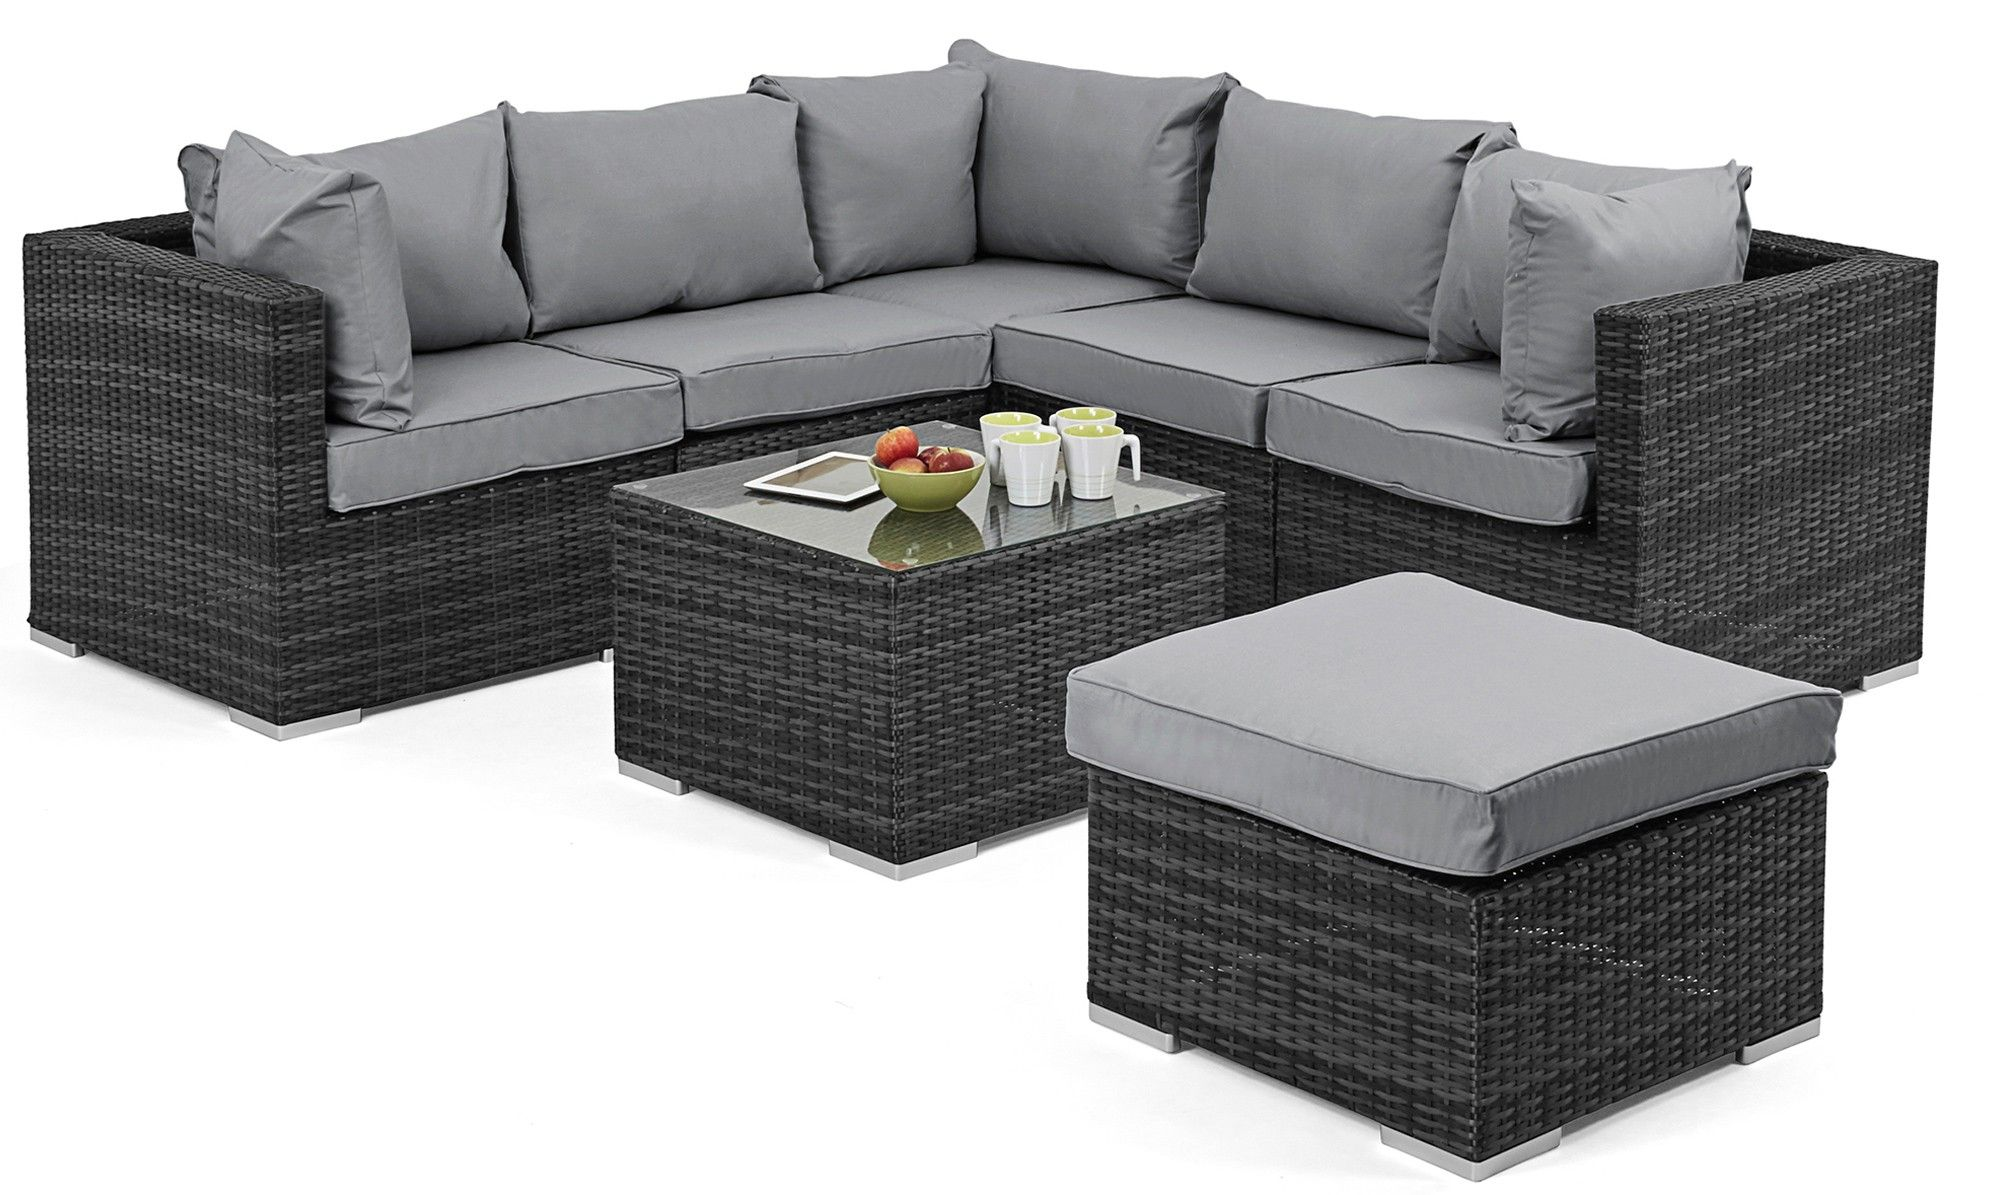 Rattan Sofa Near Me Naples Corner Sofa Grey Rattan Garden Set Rattan Sofa Sets